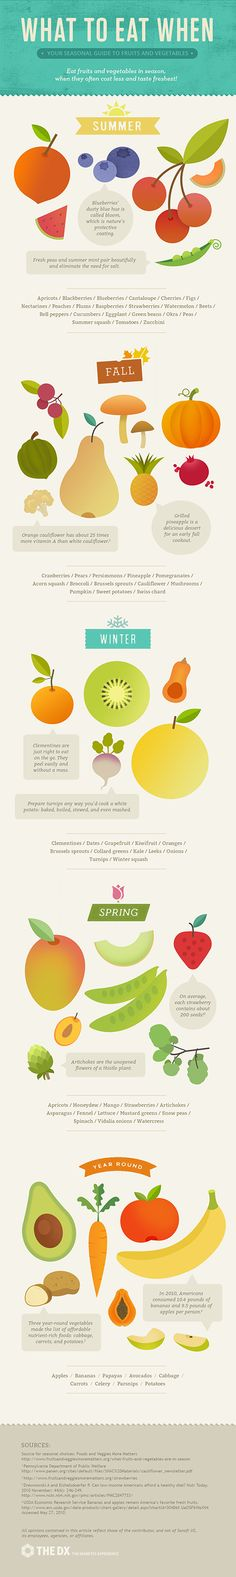 Do you know what and when is the best time to eat these fruits and vegetables? Check out this useful infographic via #TheDX